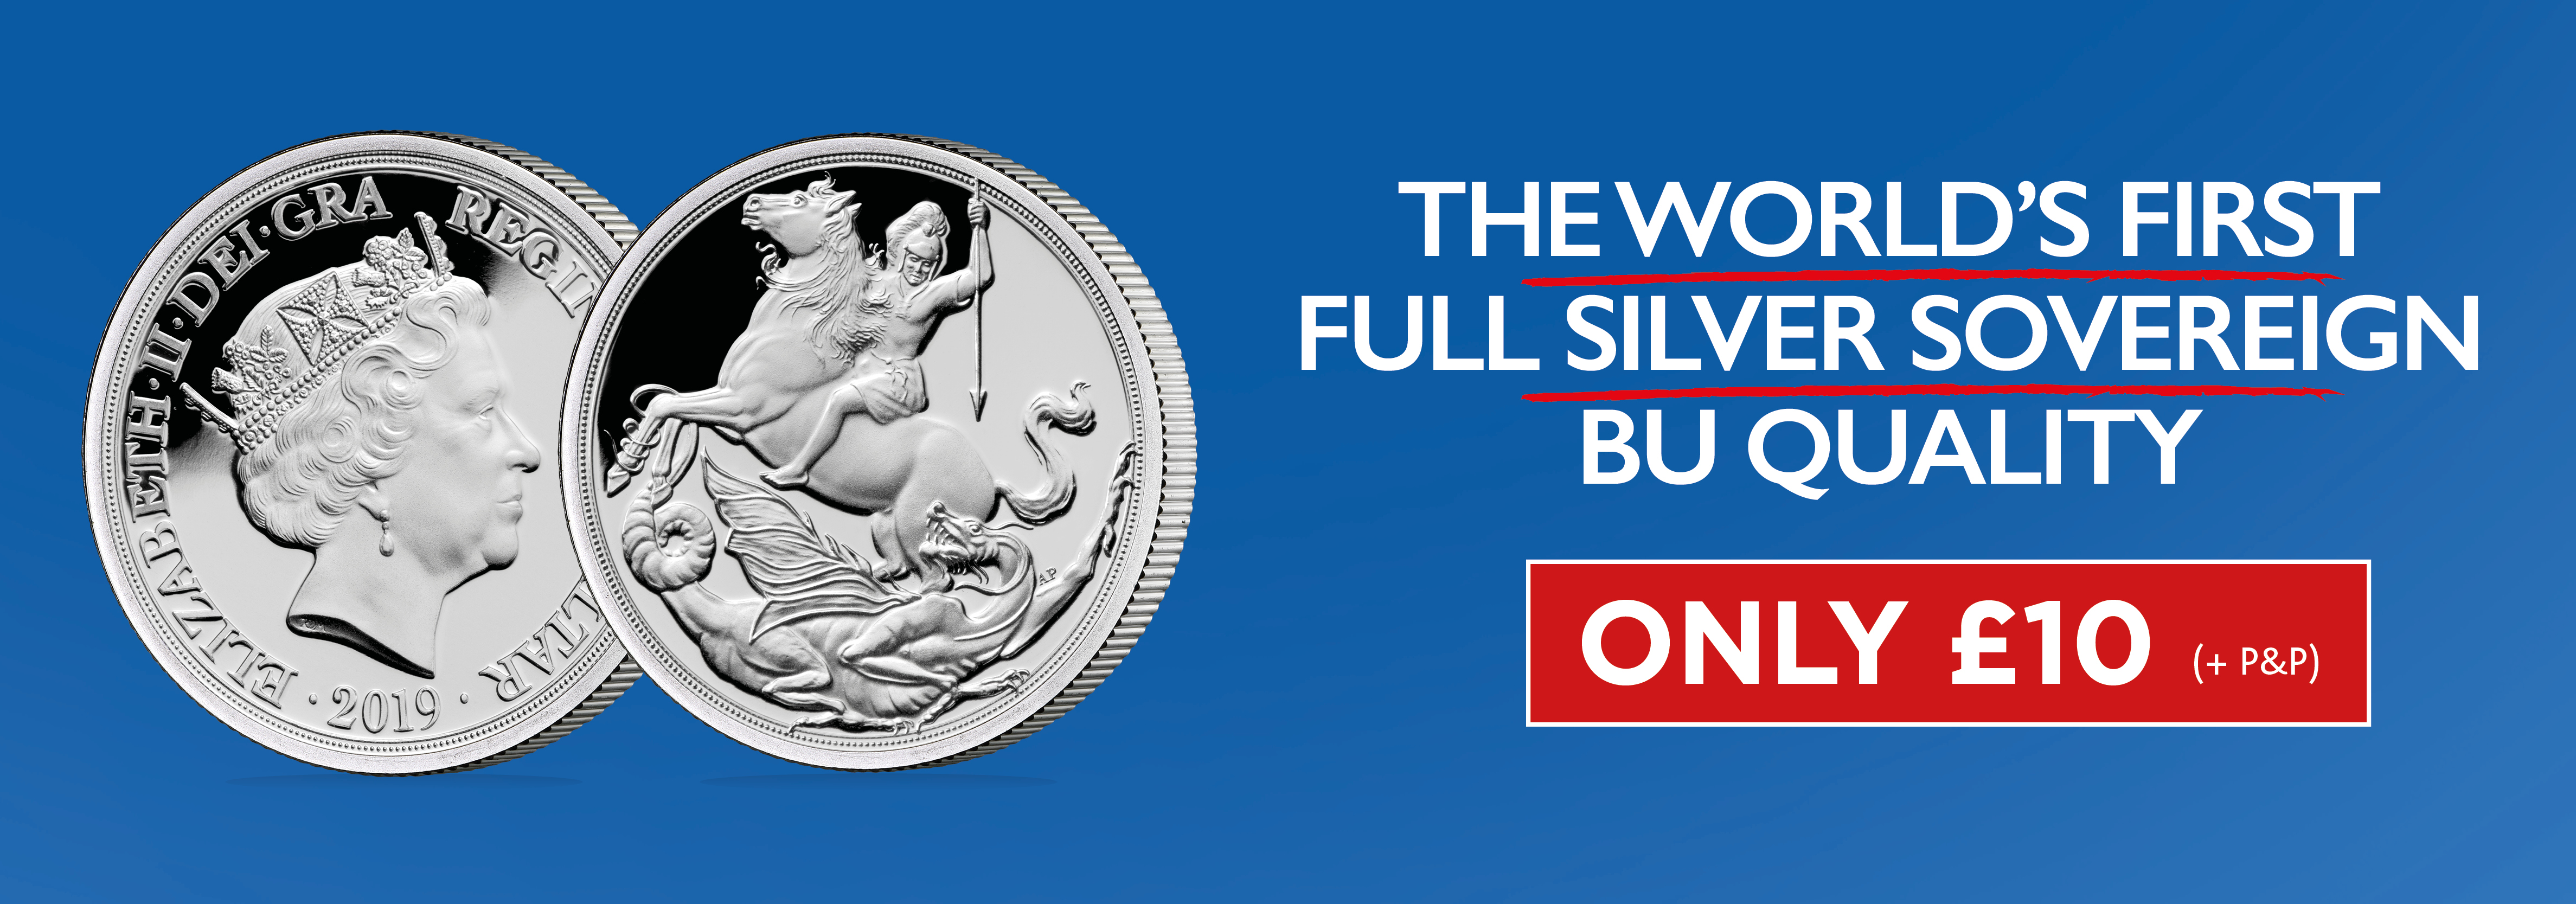 World's First Silver Sovereign!